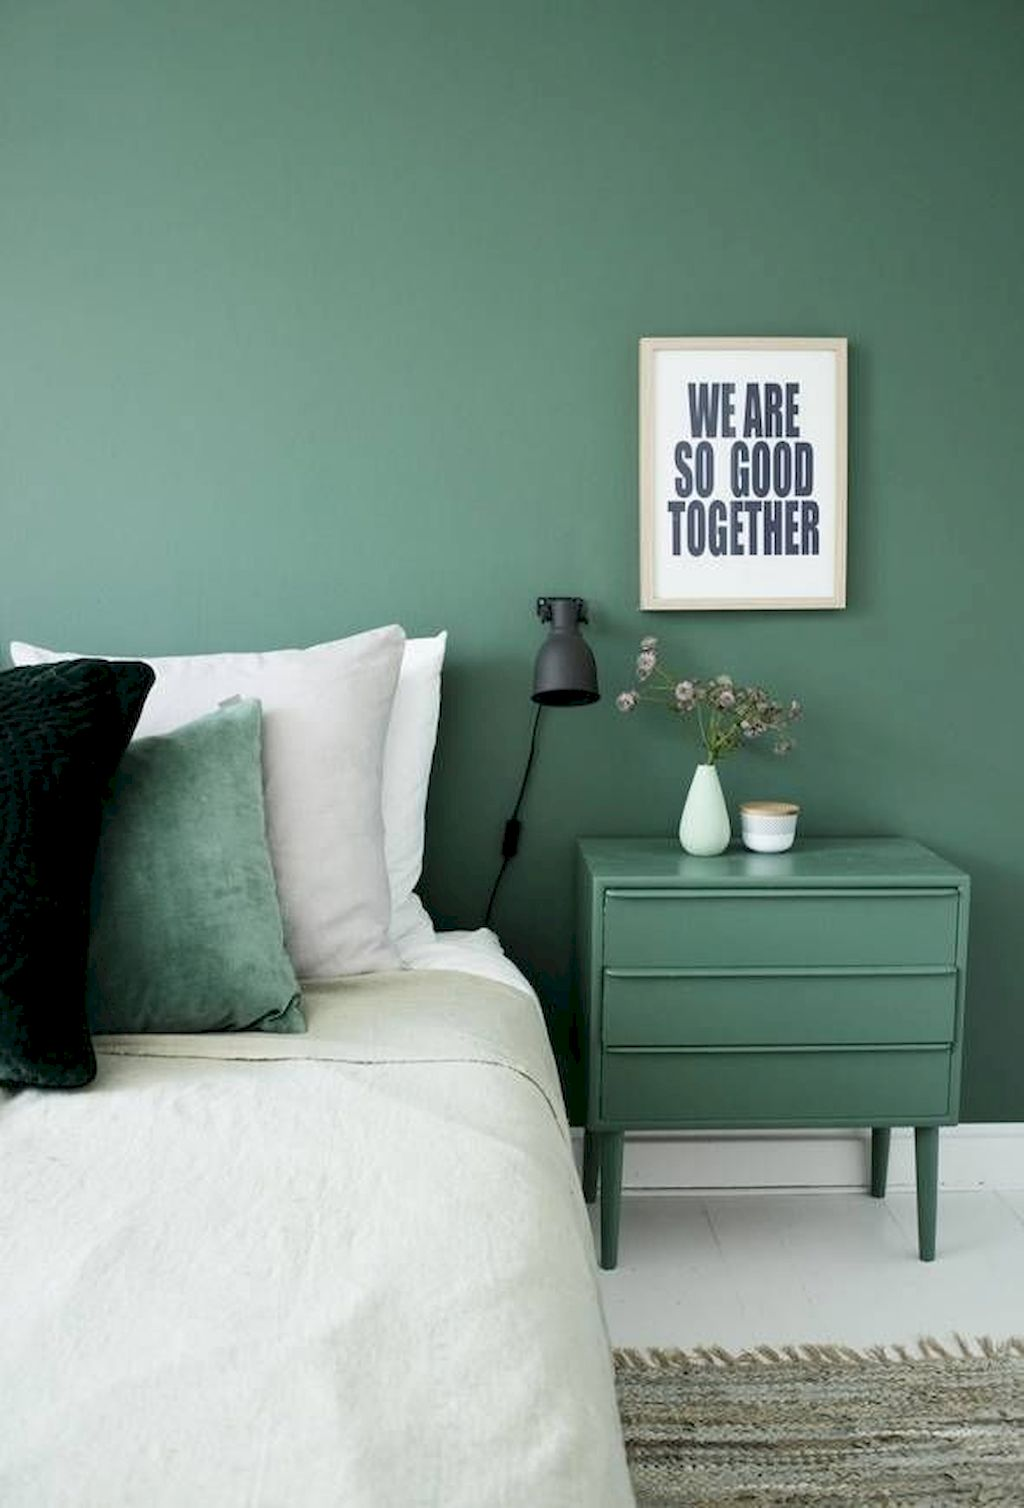 Beautiful Bedroom Designs in Brave Color Mix - Elonahome.com